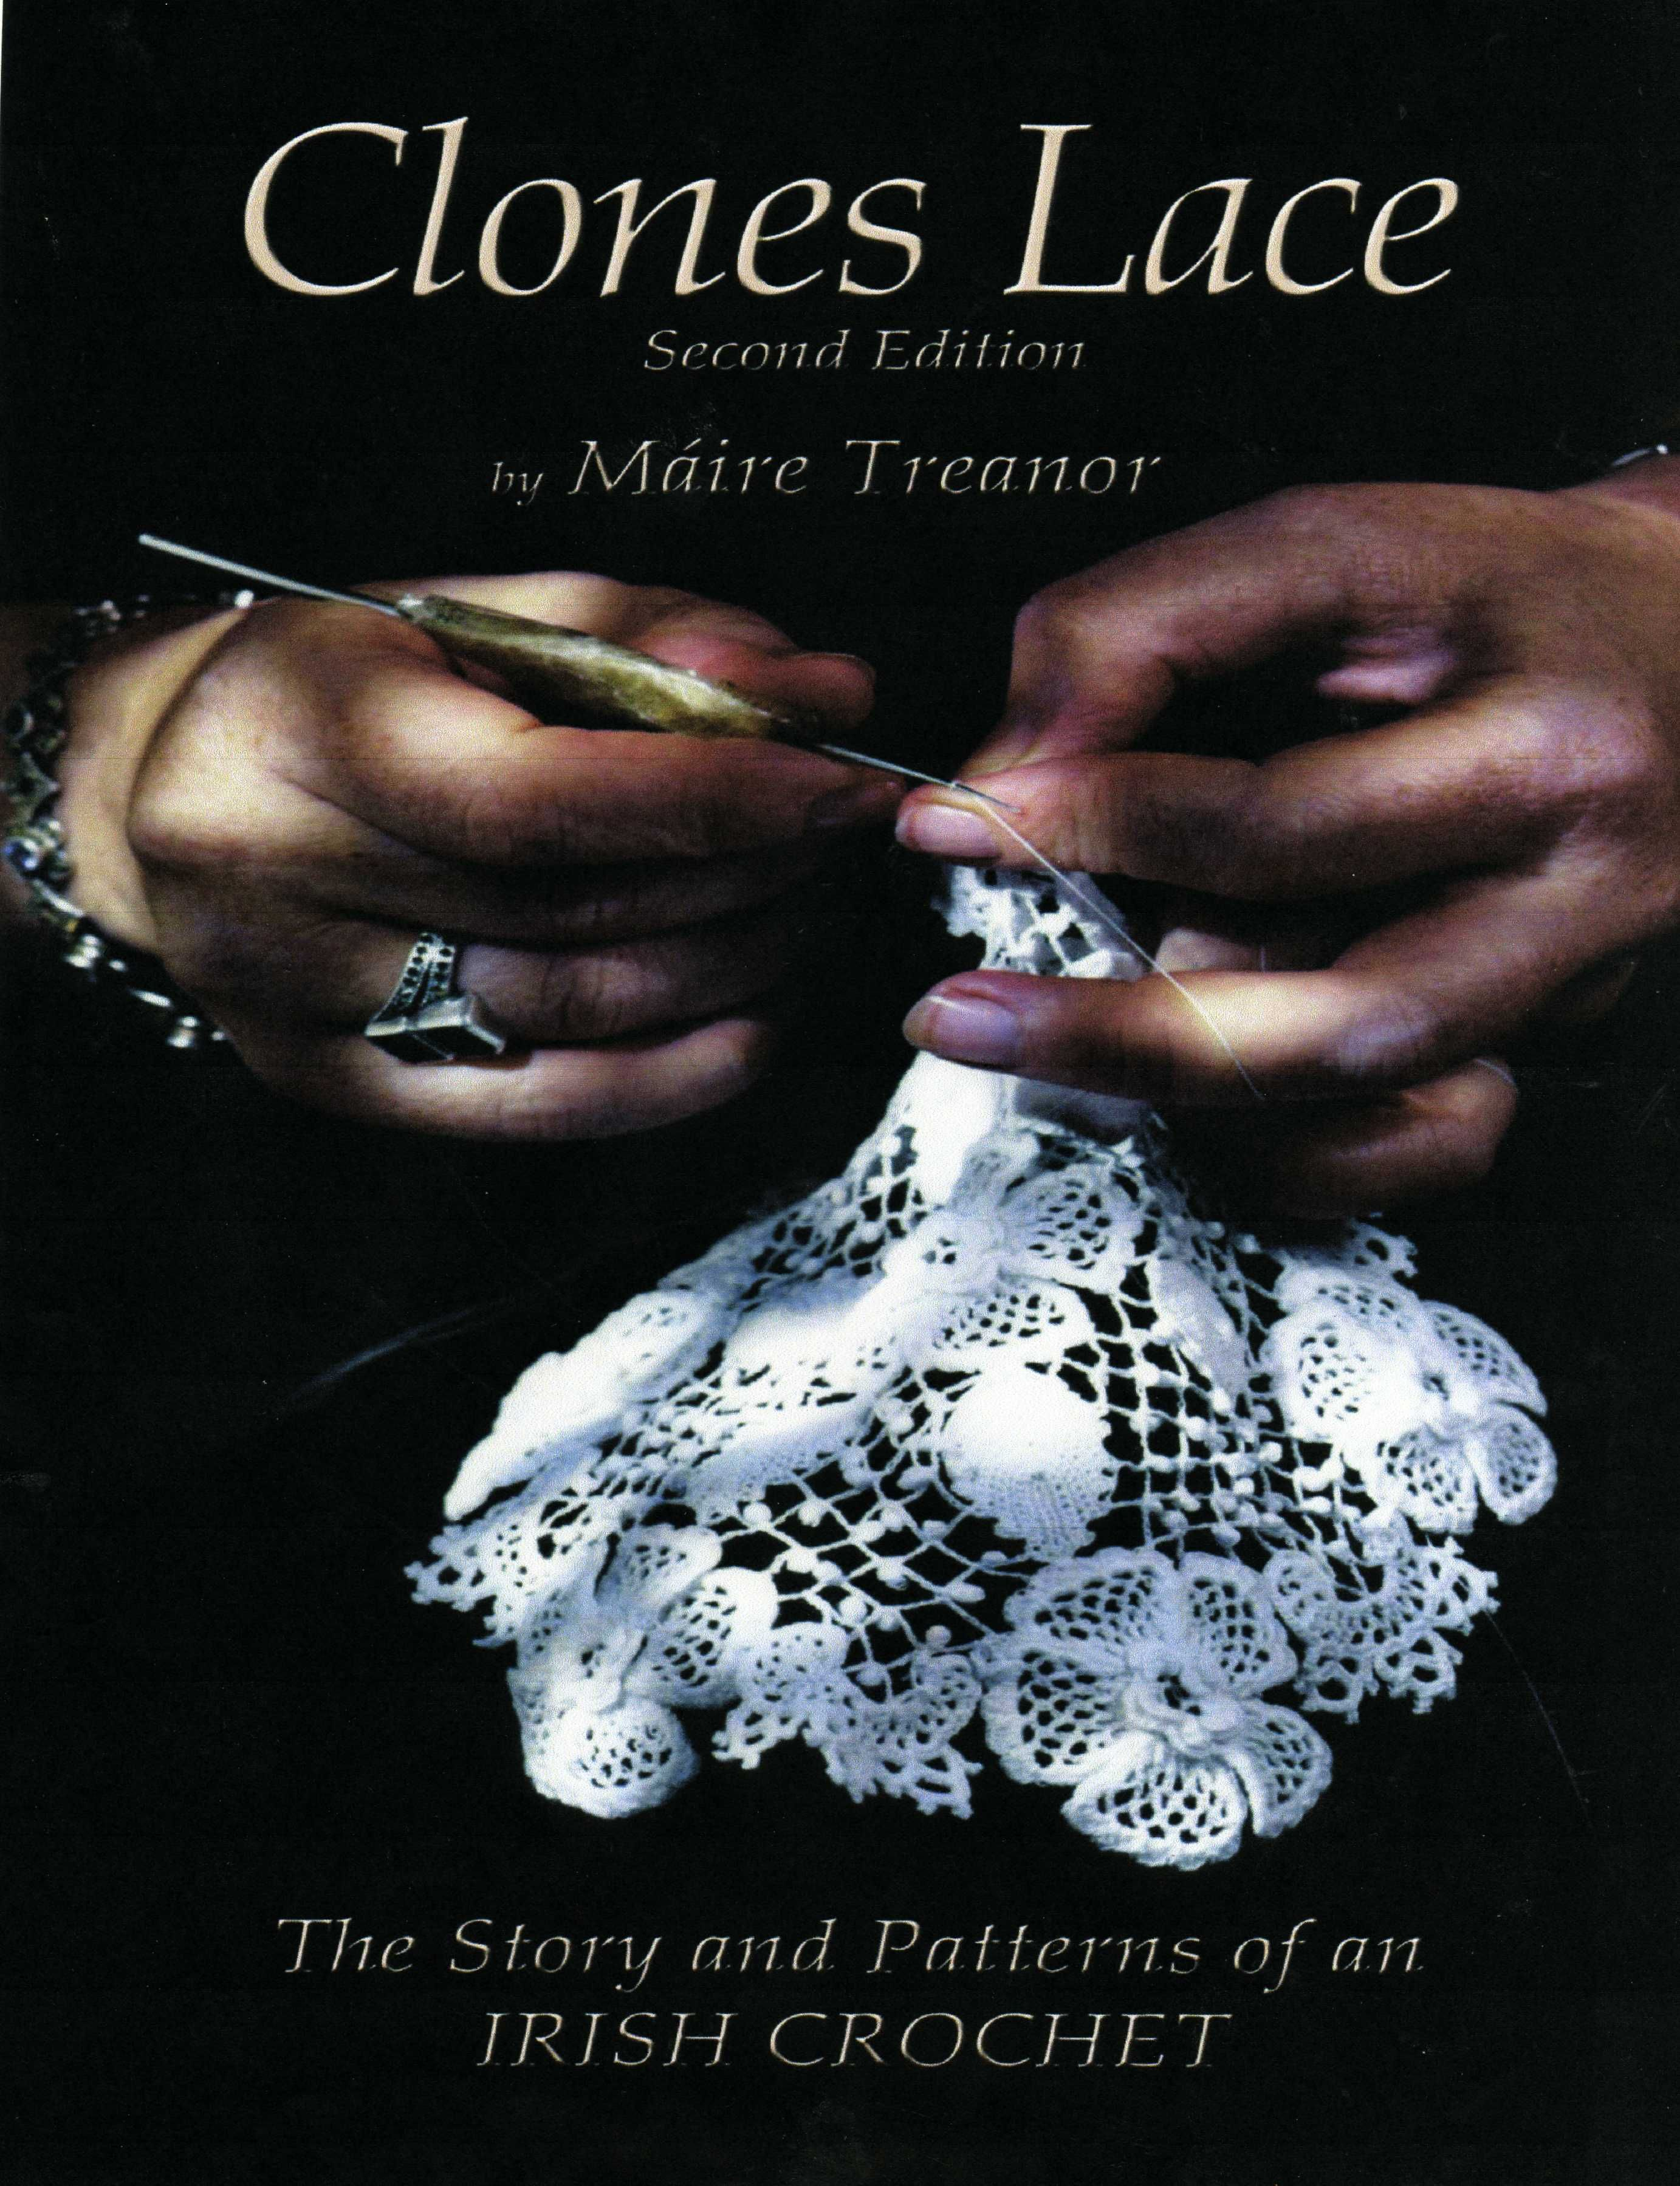 Clones lace the book crochet crochet lace and crochet books patterns bankloansurffo Image collections